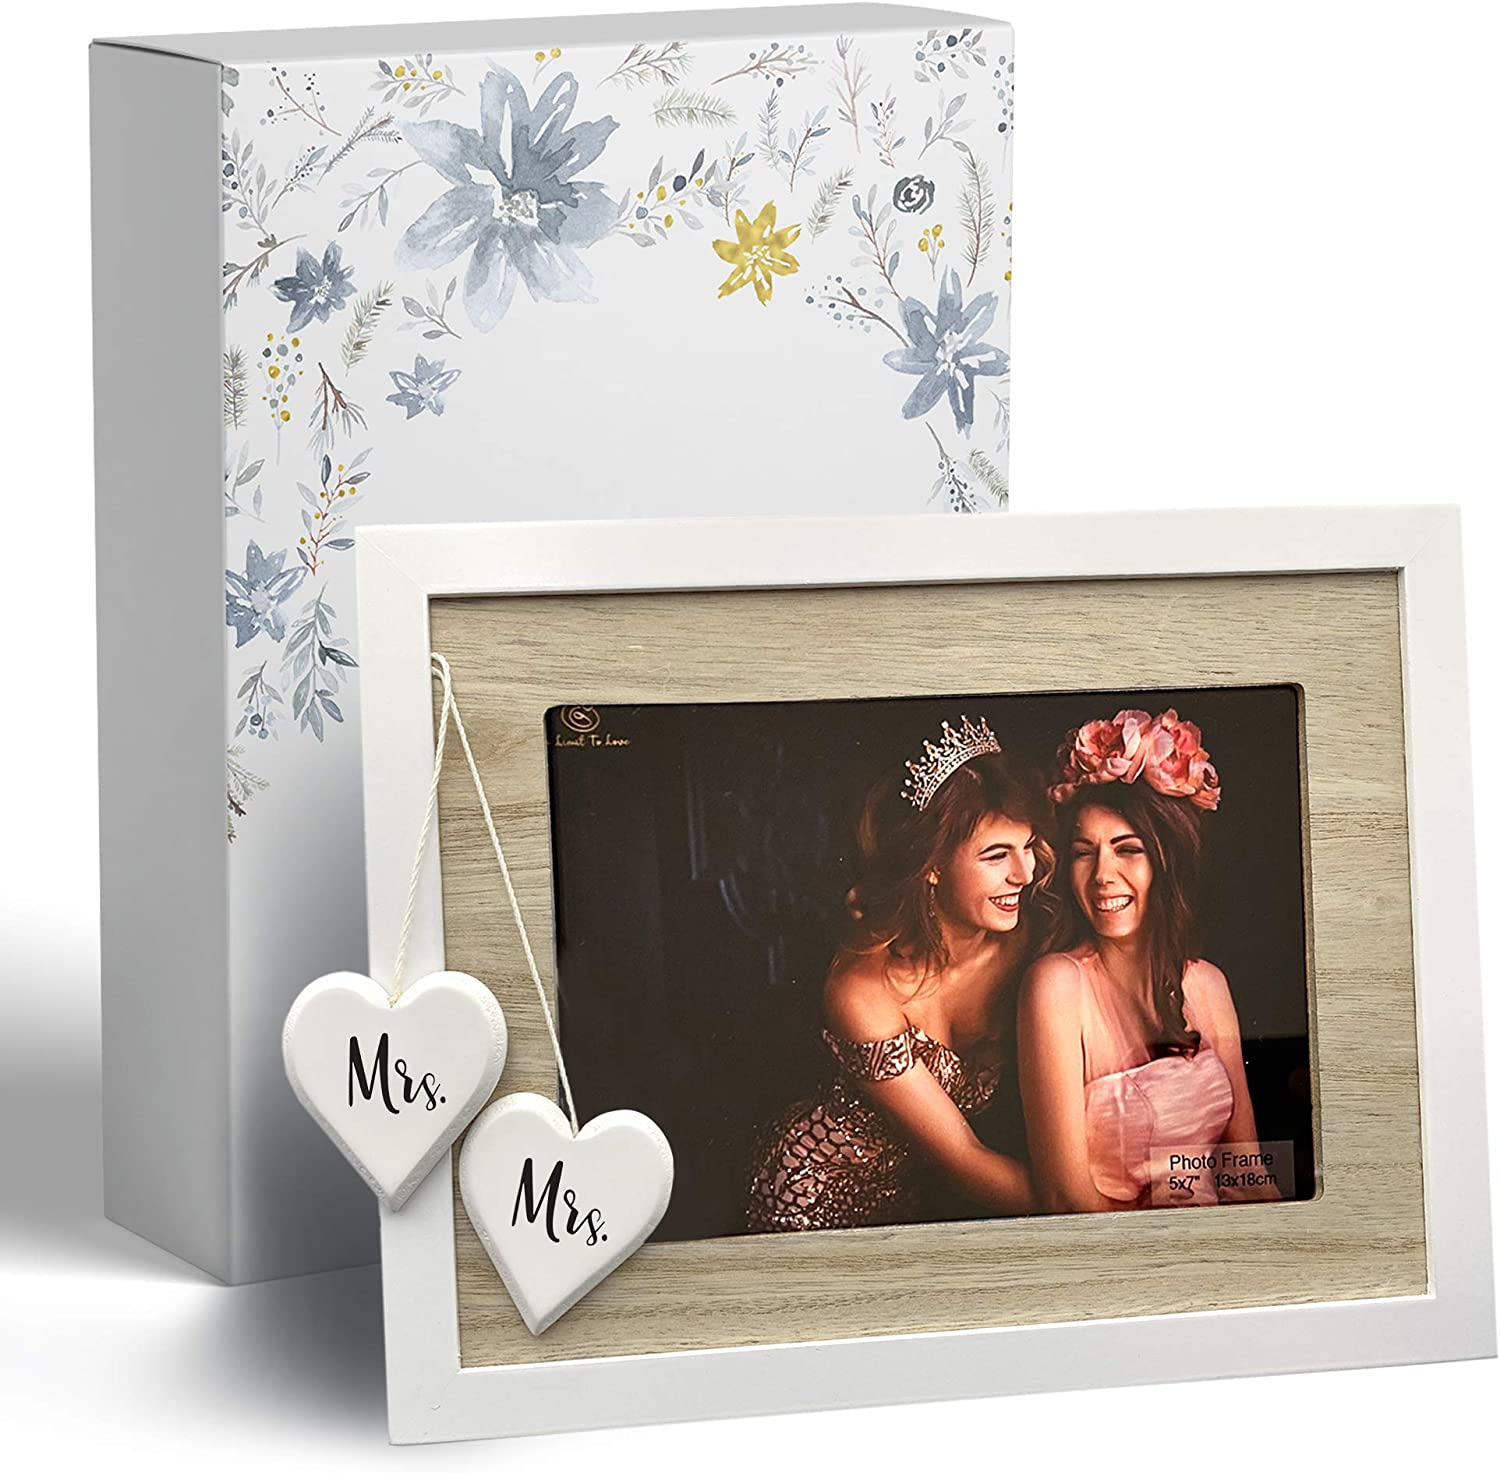 No Limit to Love Mrs & Mrs 5x7 Picture Frame - White Picture Frames with Hearts, Lesbian Couple Gifts - Mrs and Mrs Lesbian Wedding Gift